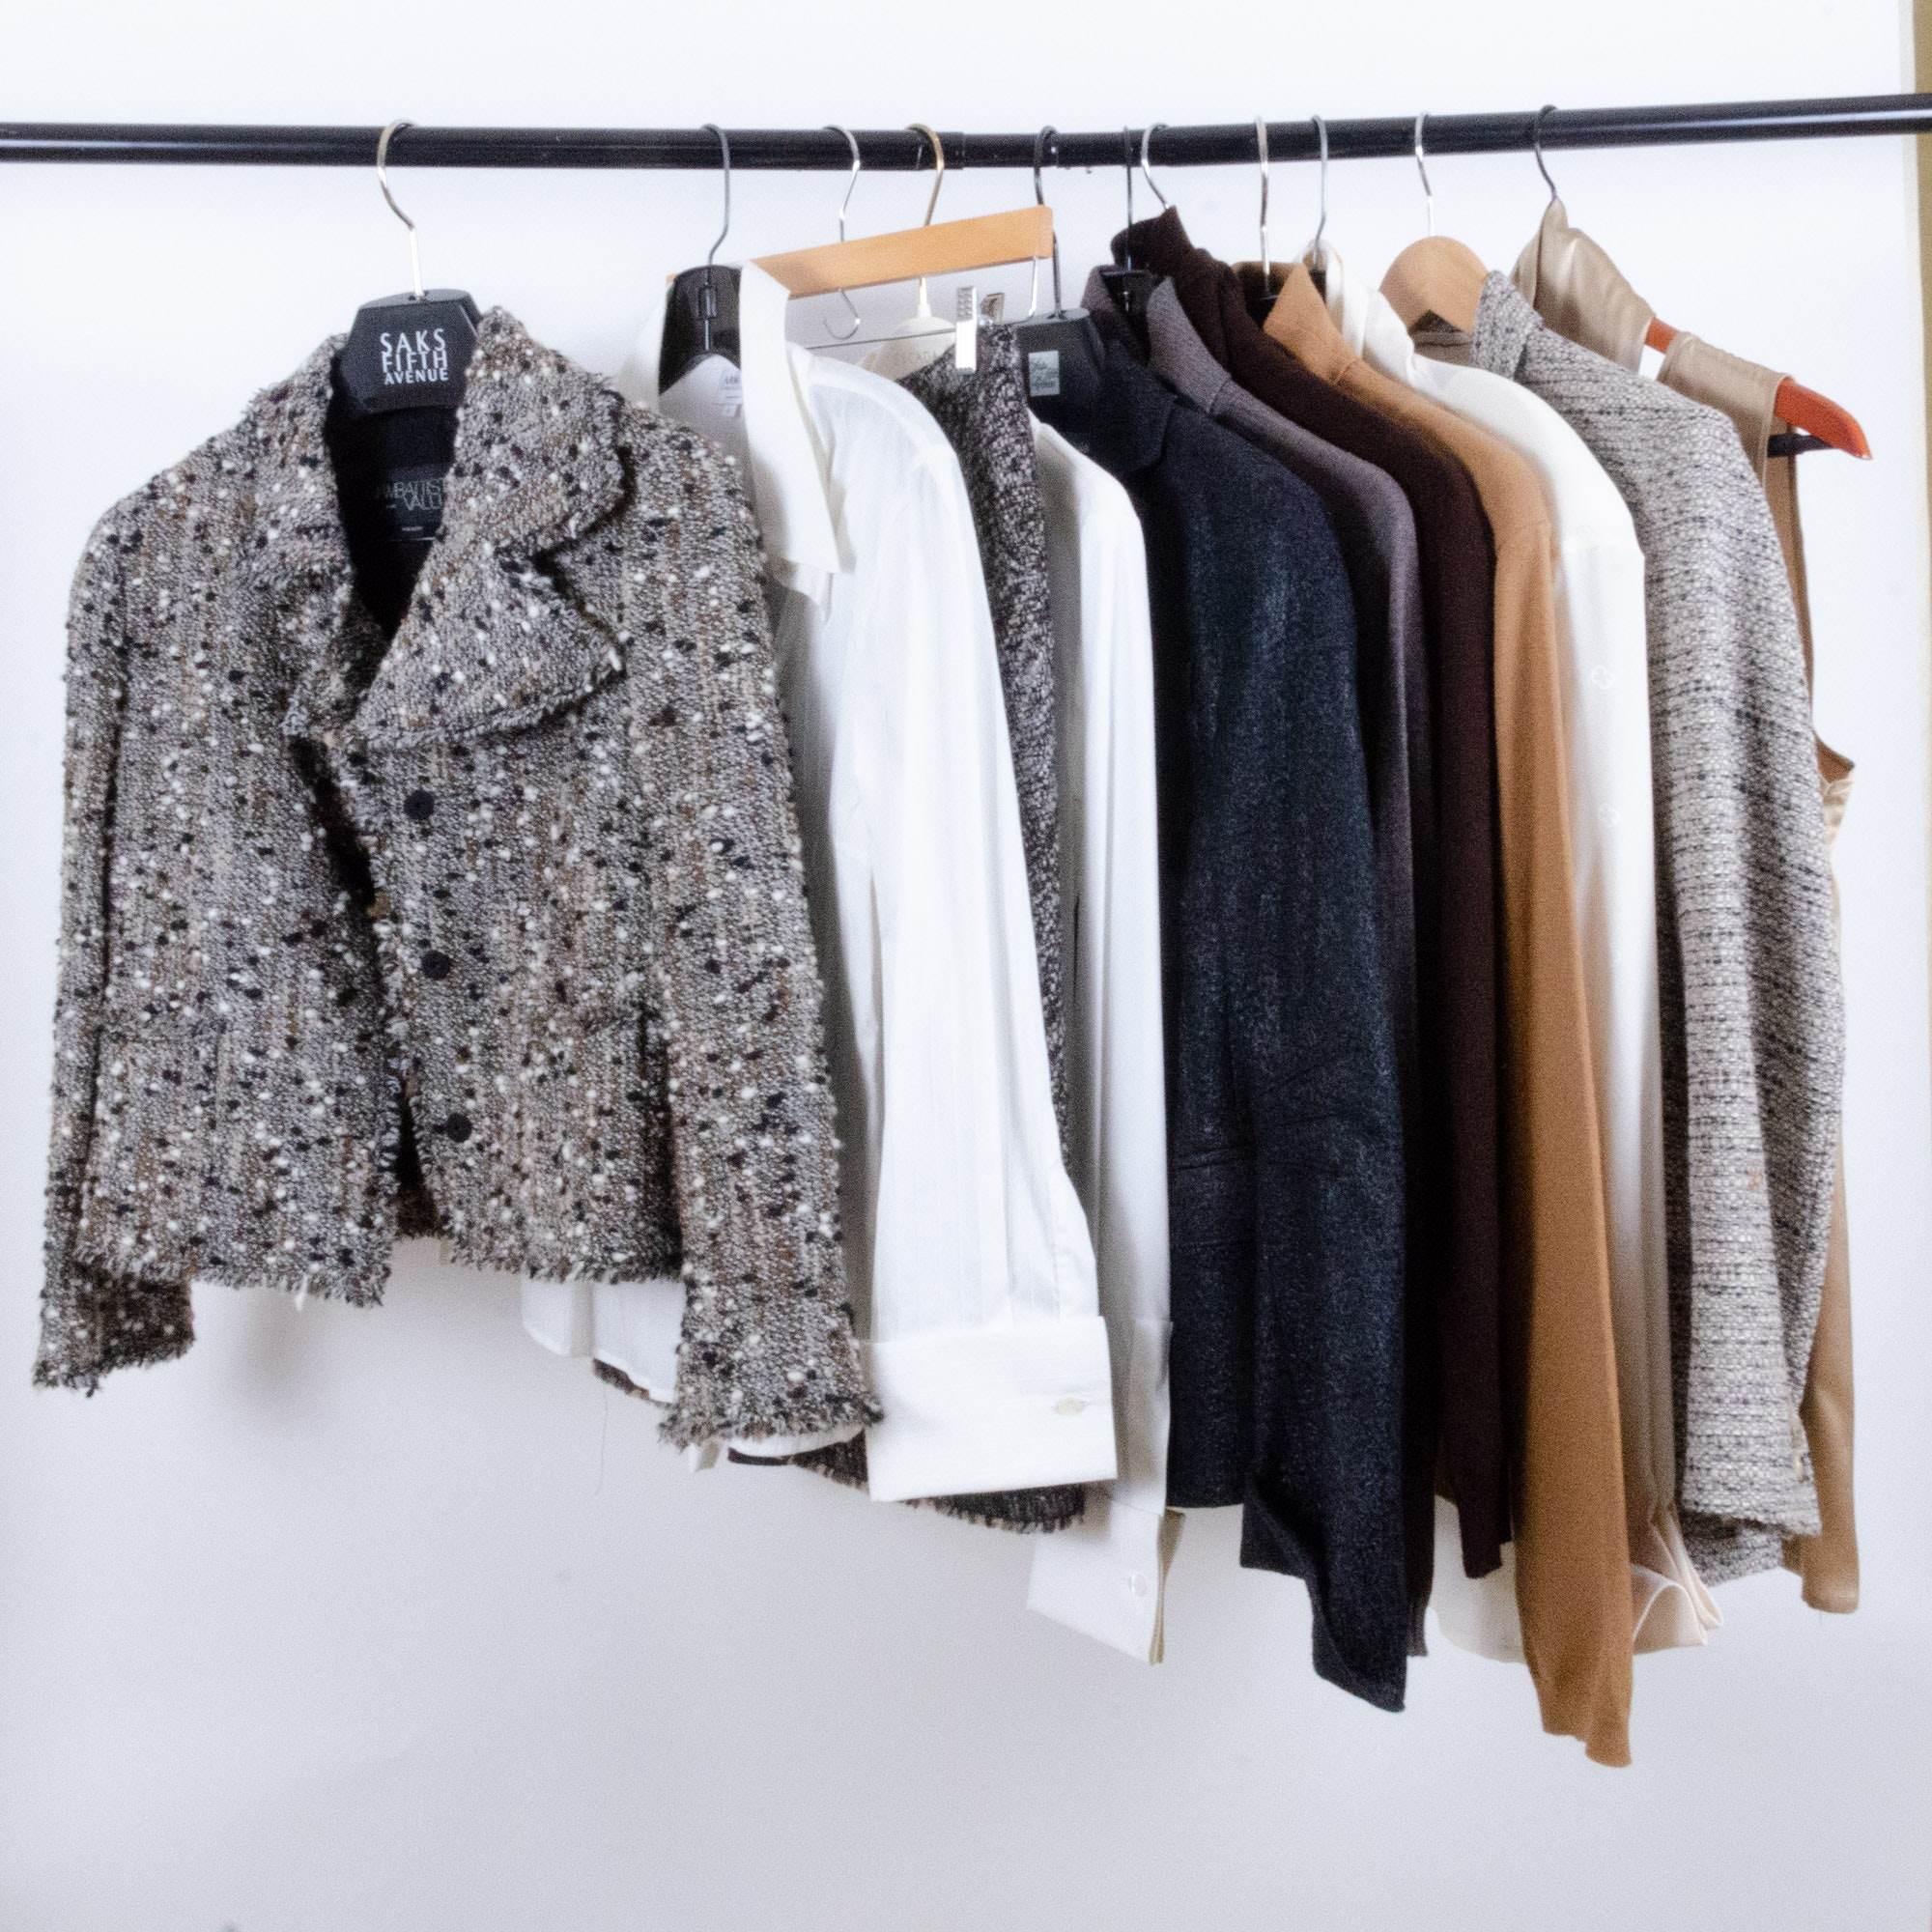 Women's Wool Jackets, Sweaters and Blouses with Armani, Akris Punto, Escada